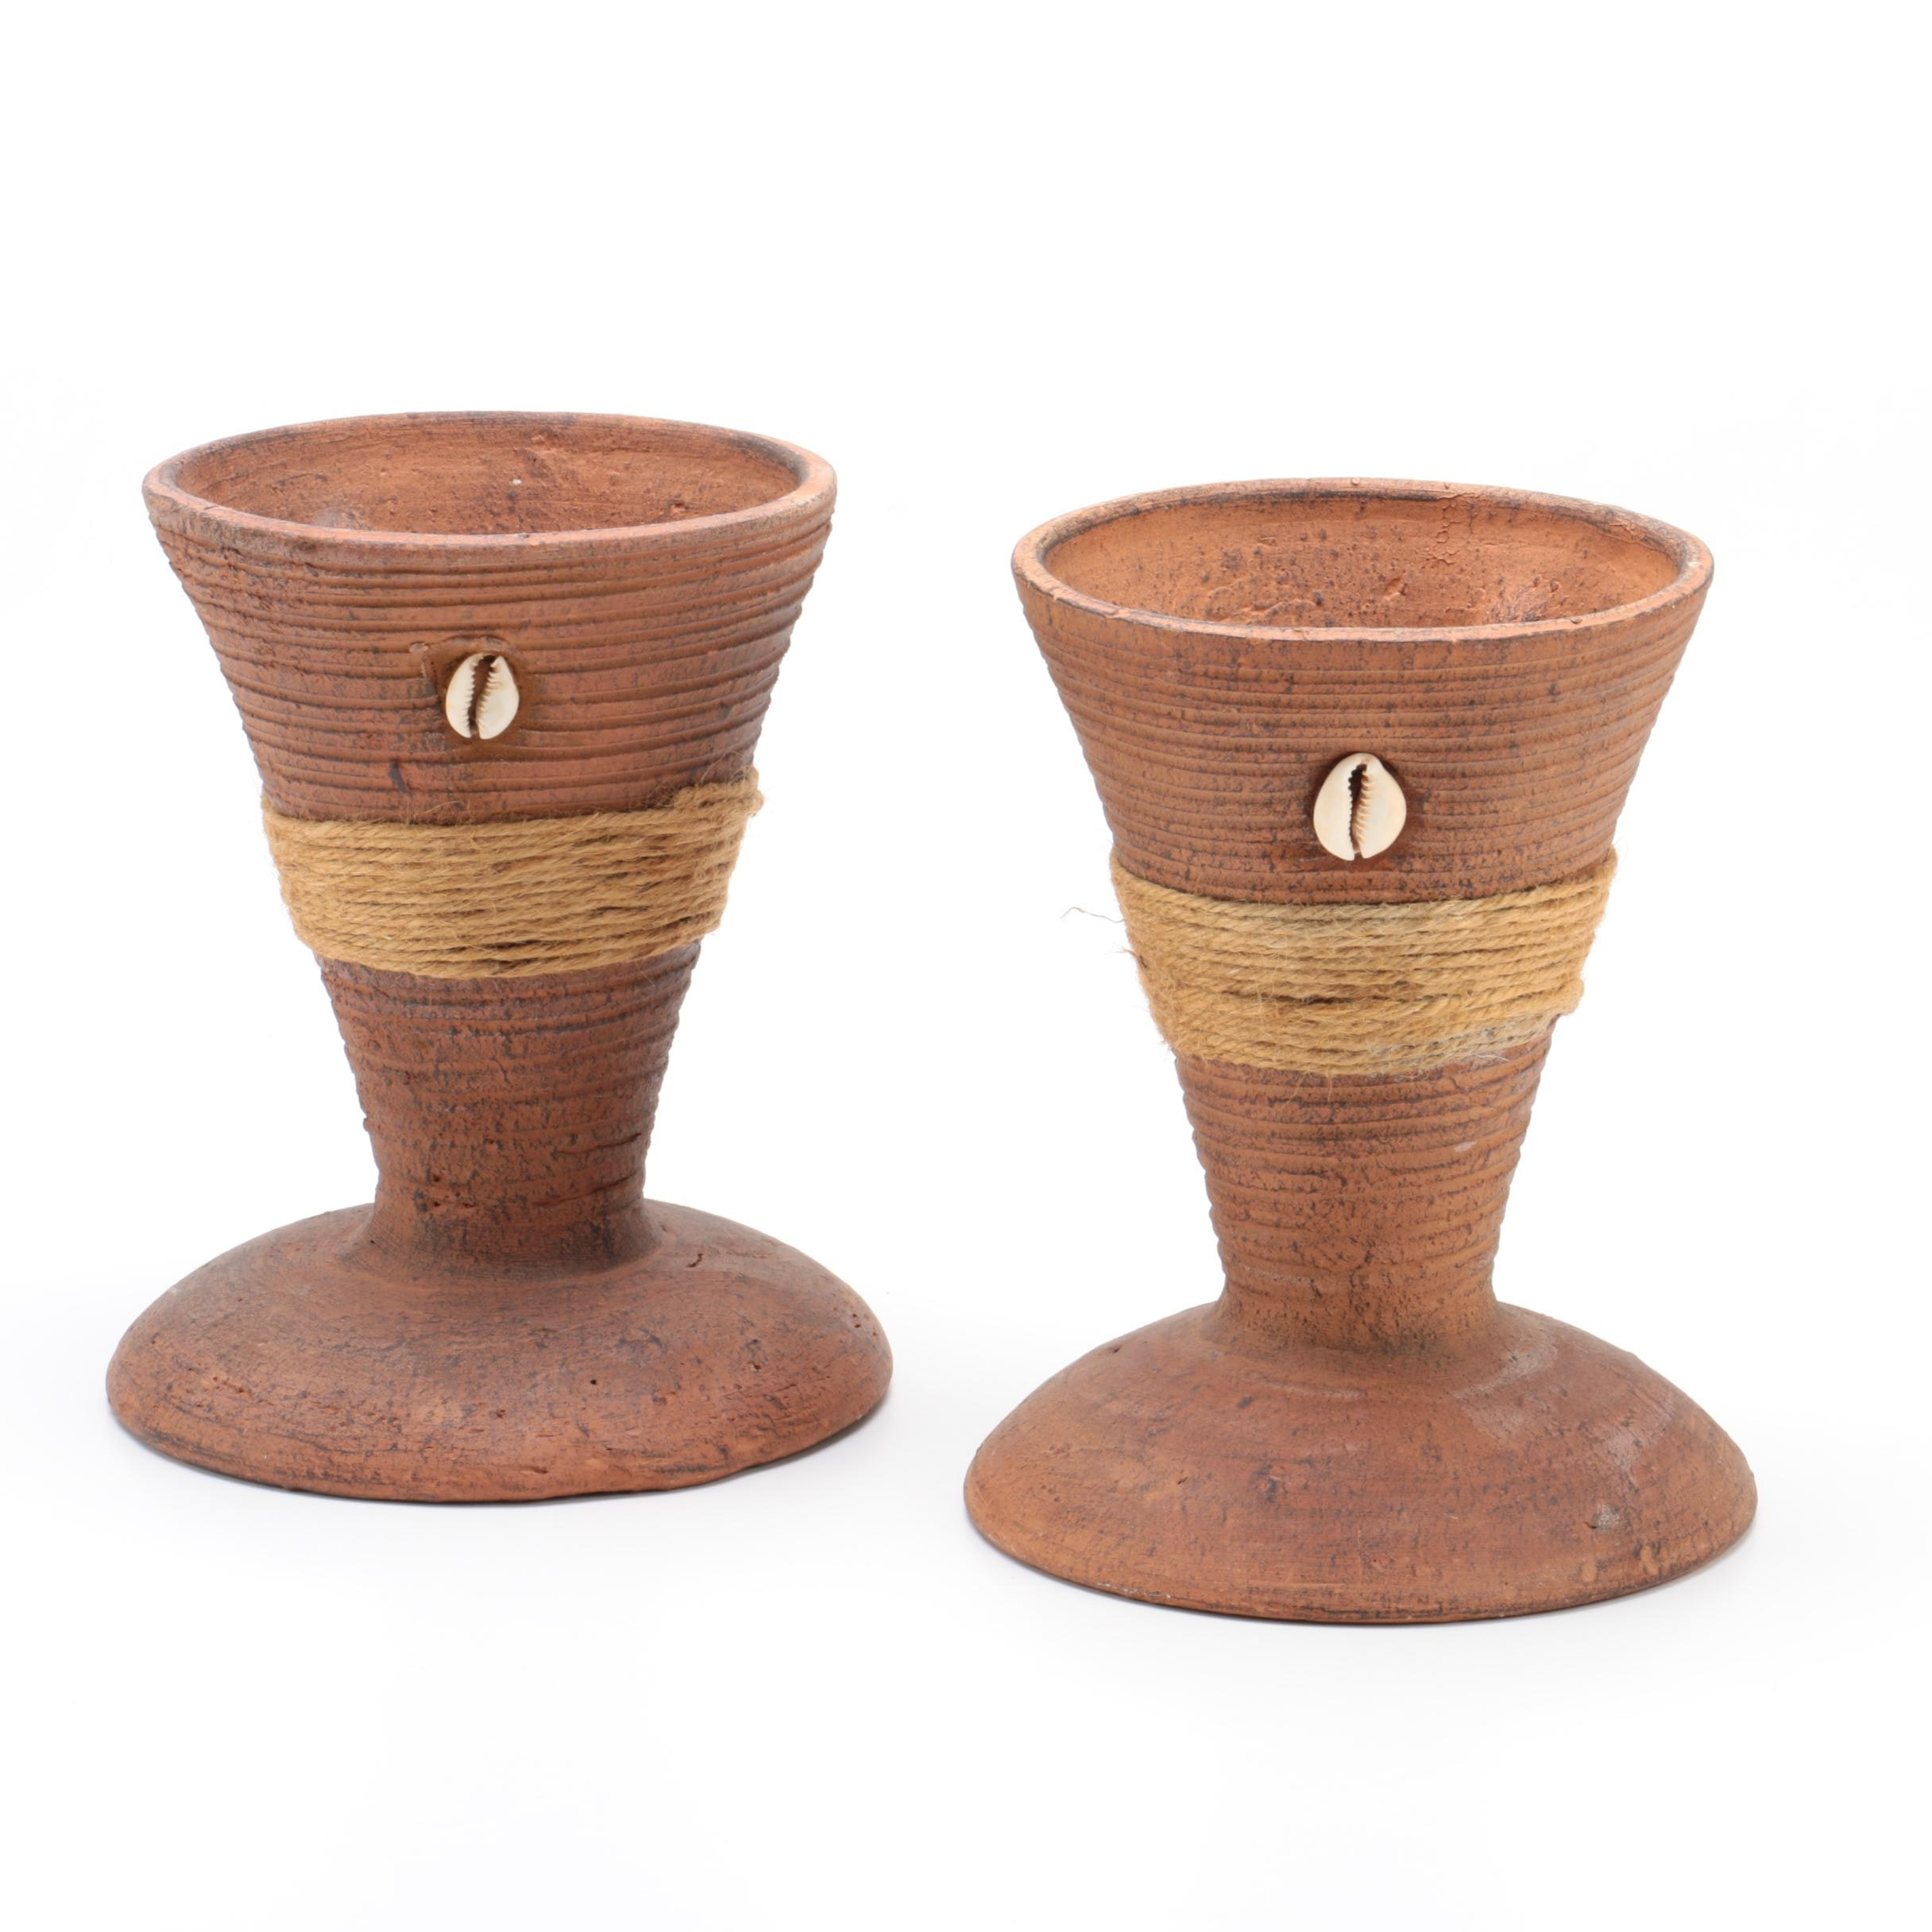 Ceramic Planters with Jute and Cowrie Shell Accents